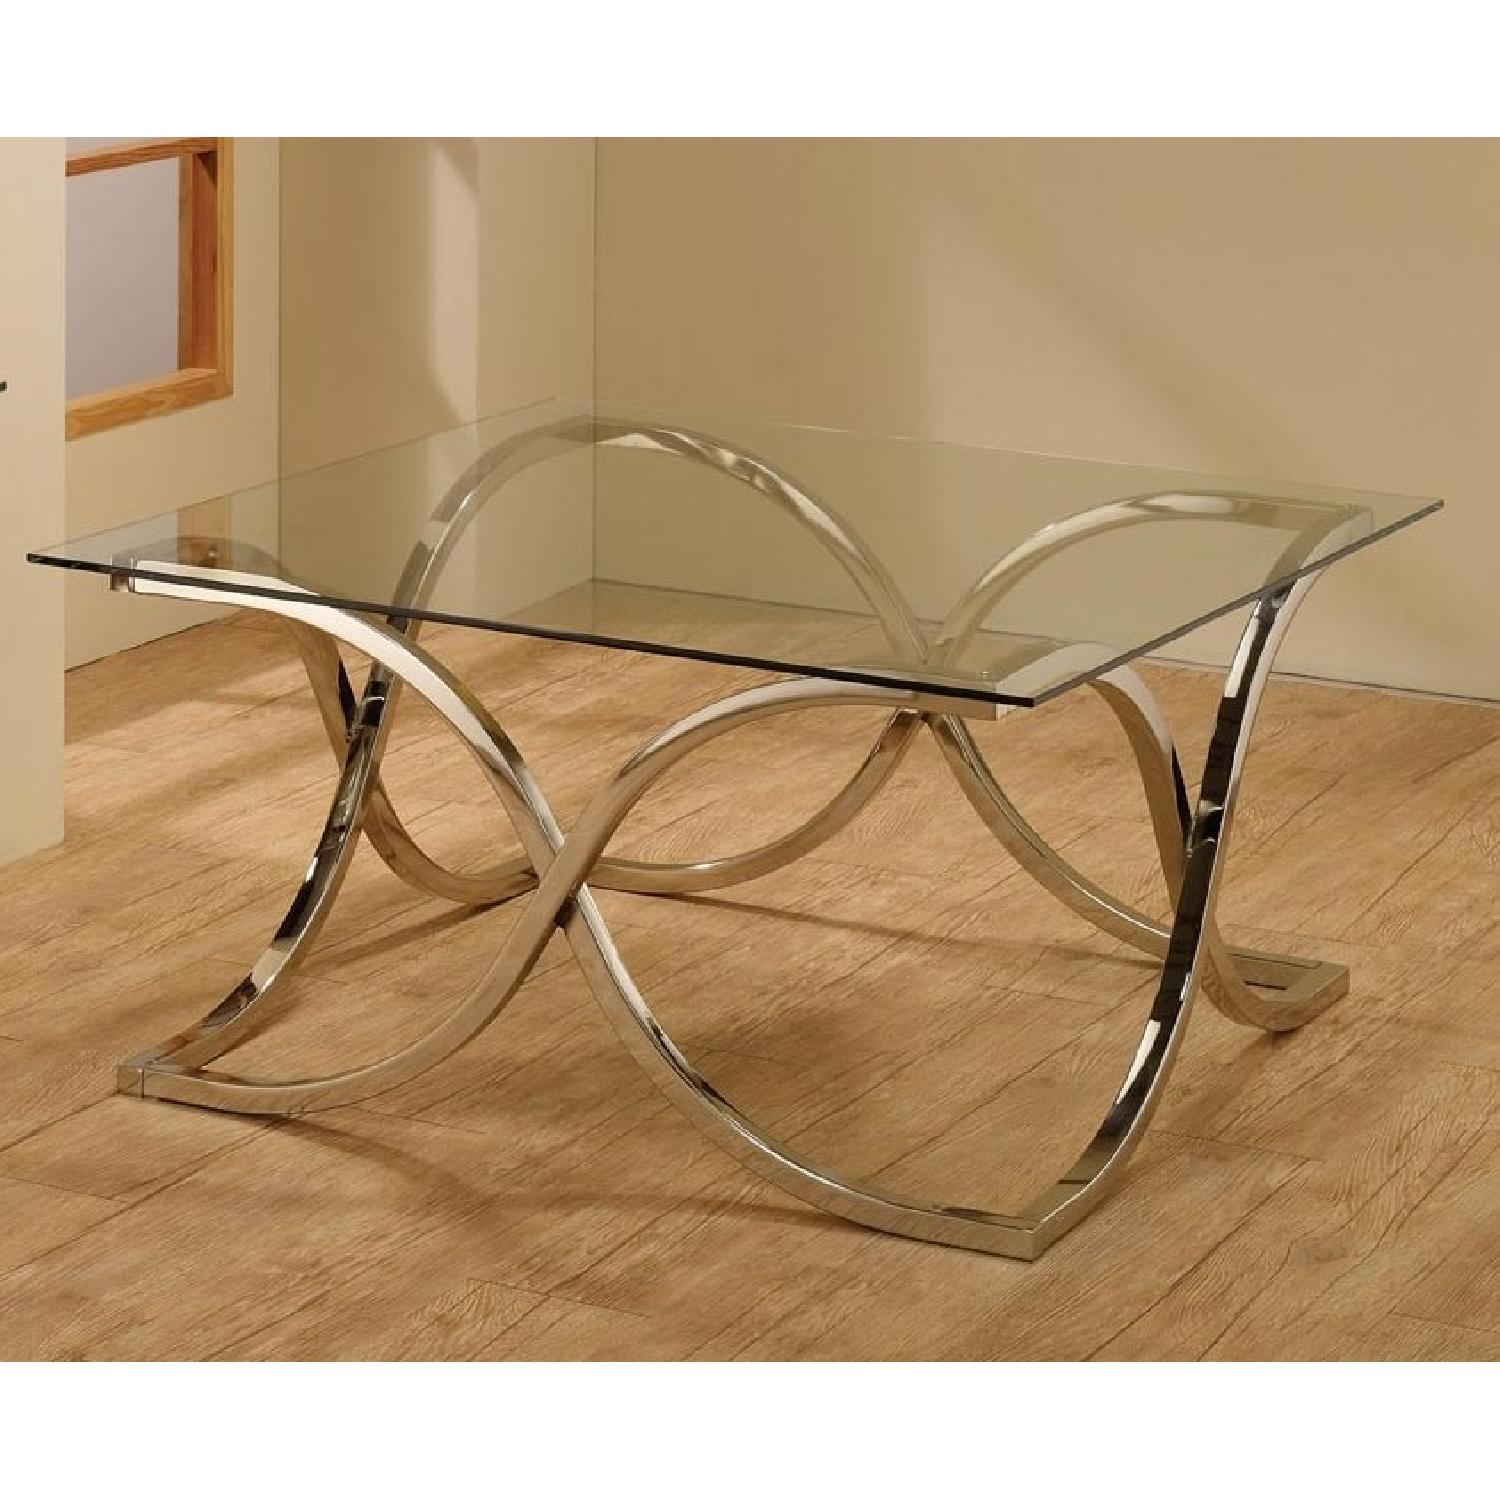 Delicieux Coffee Table W/ Tempered Glass Top U0026 Artistic Metal Base